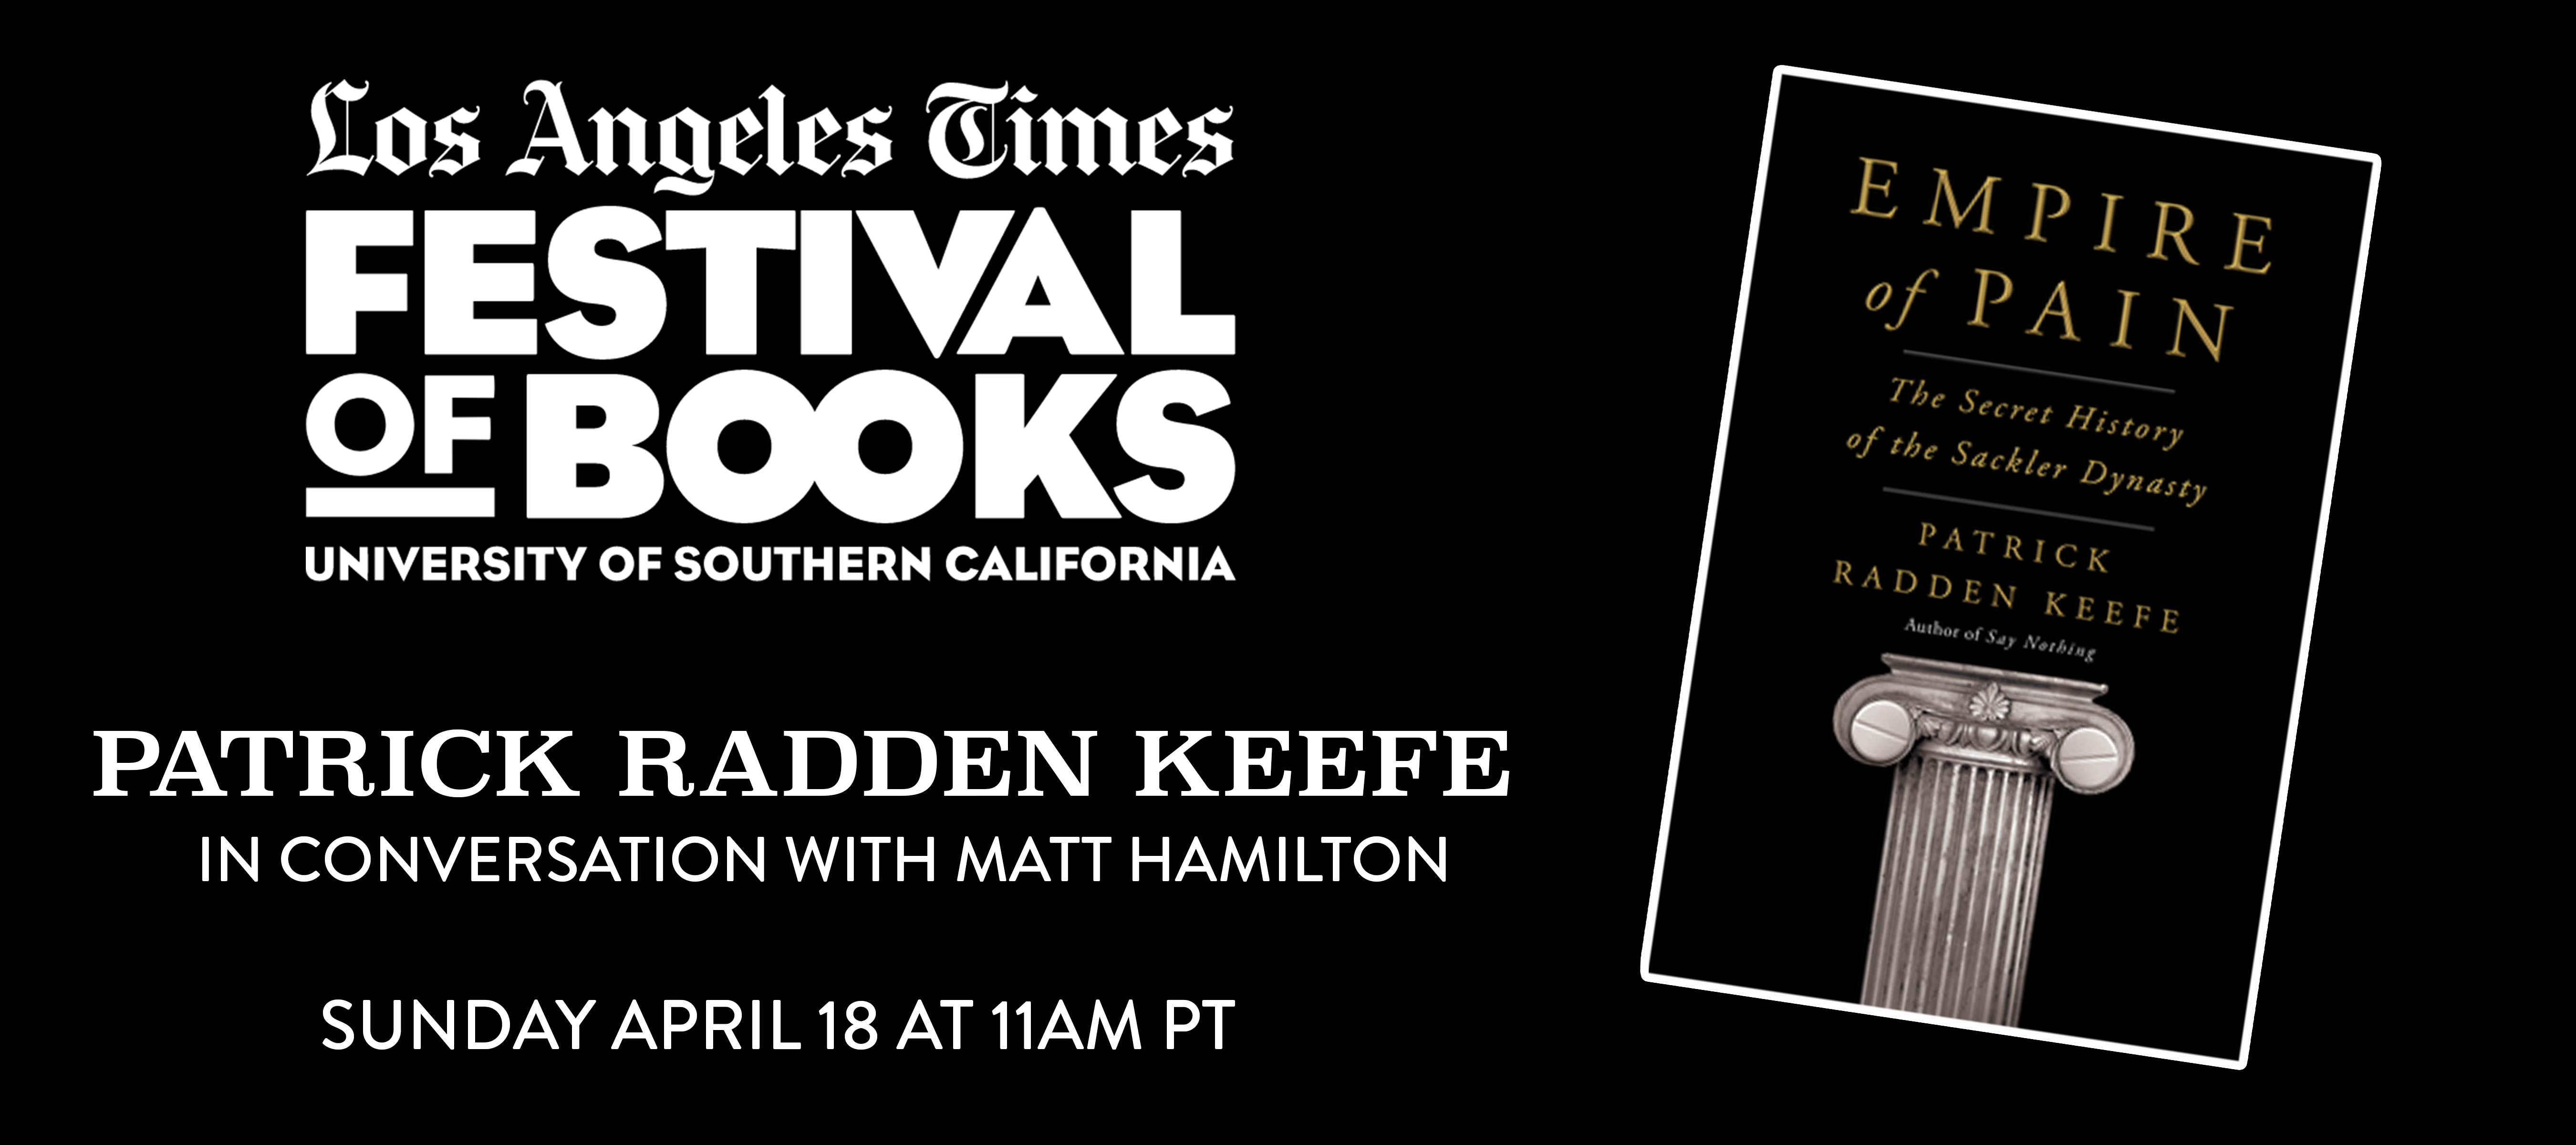 Monday, April 19, 6:00pm L.A. Times Festival of Books presents This Moment in Fiction